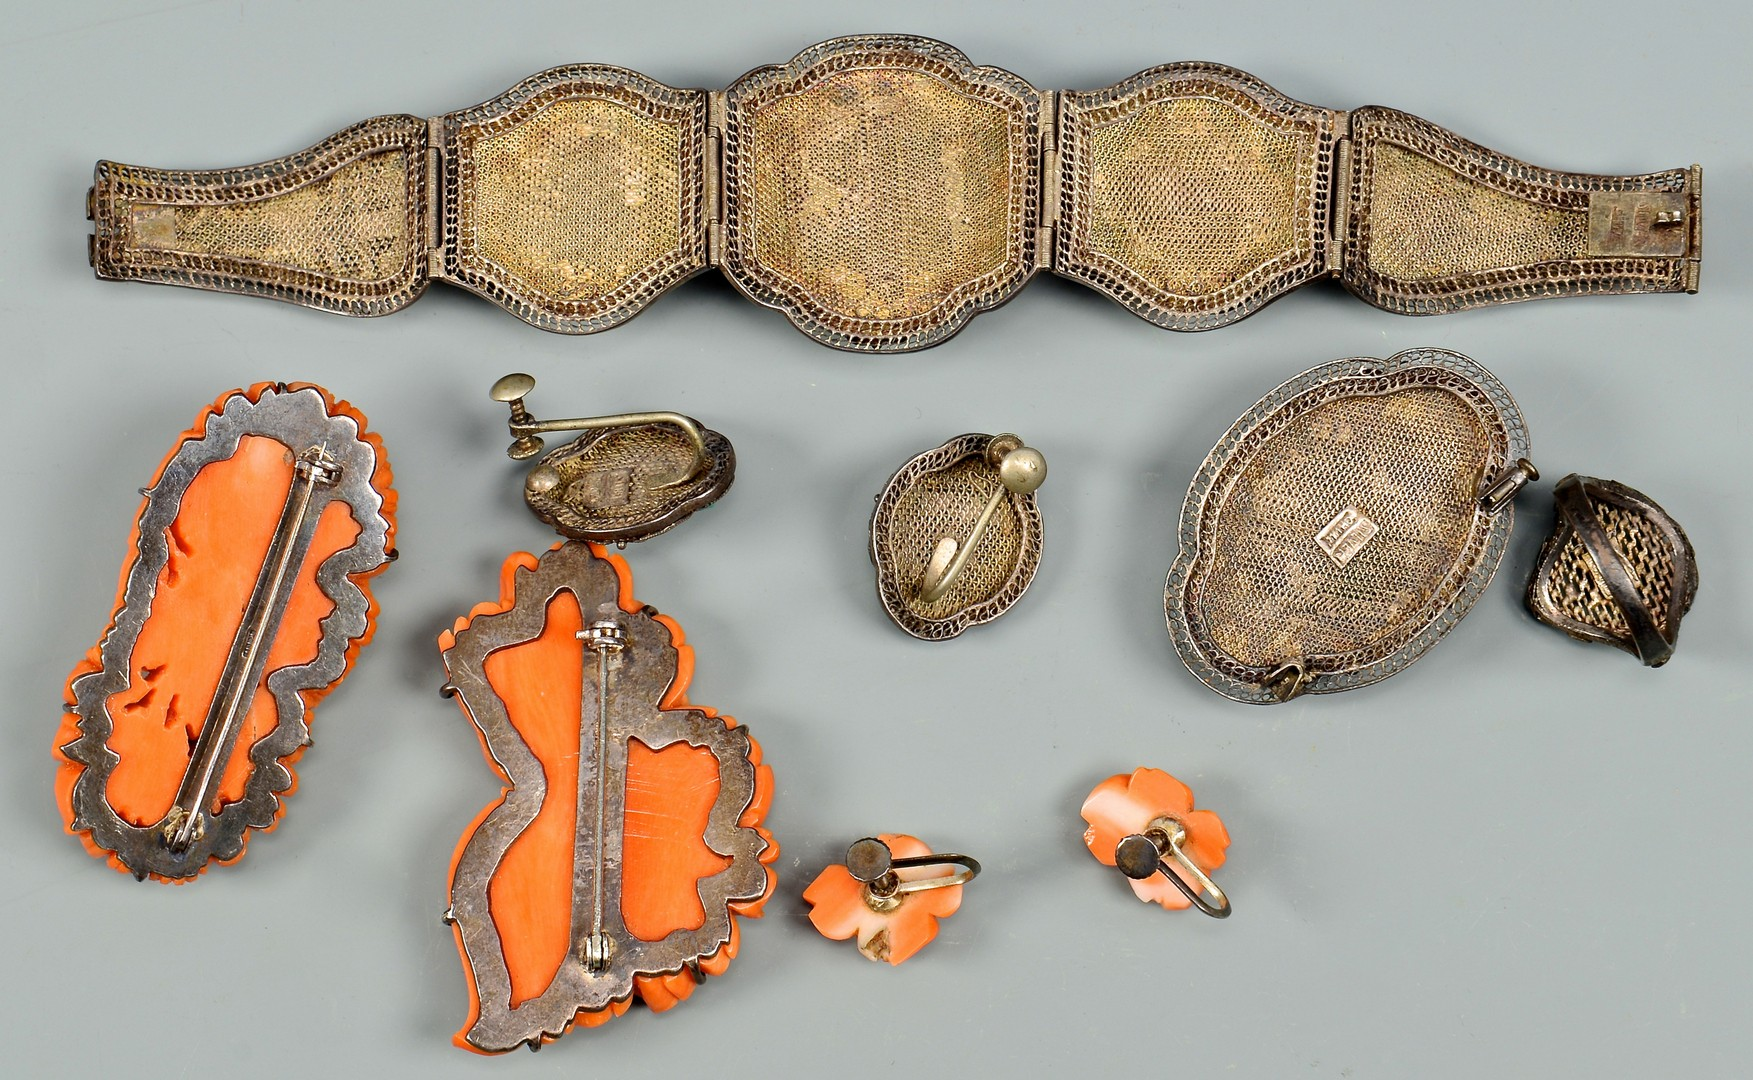 Lot 4010096: Large Group of Asian jewelry